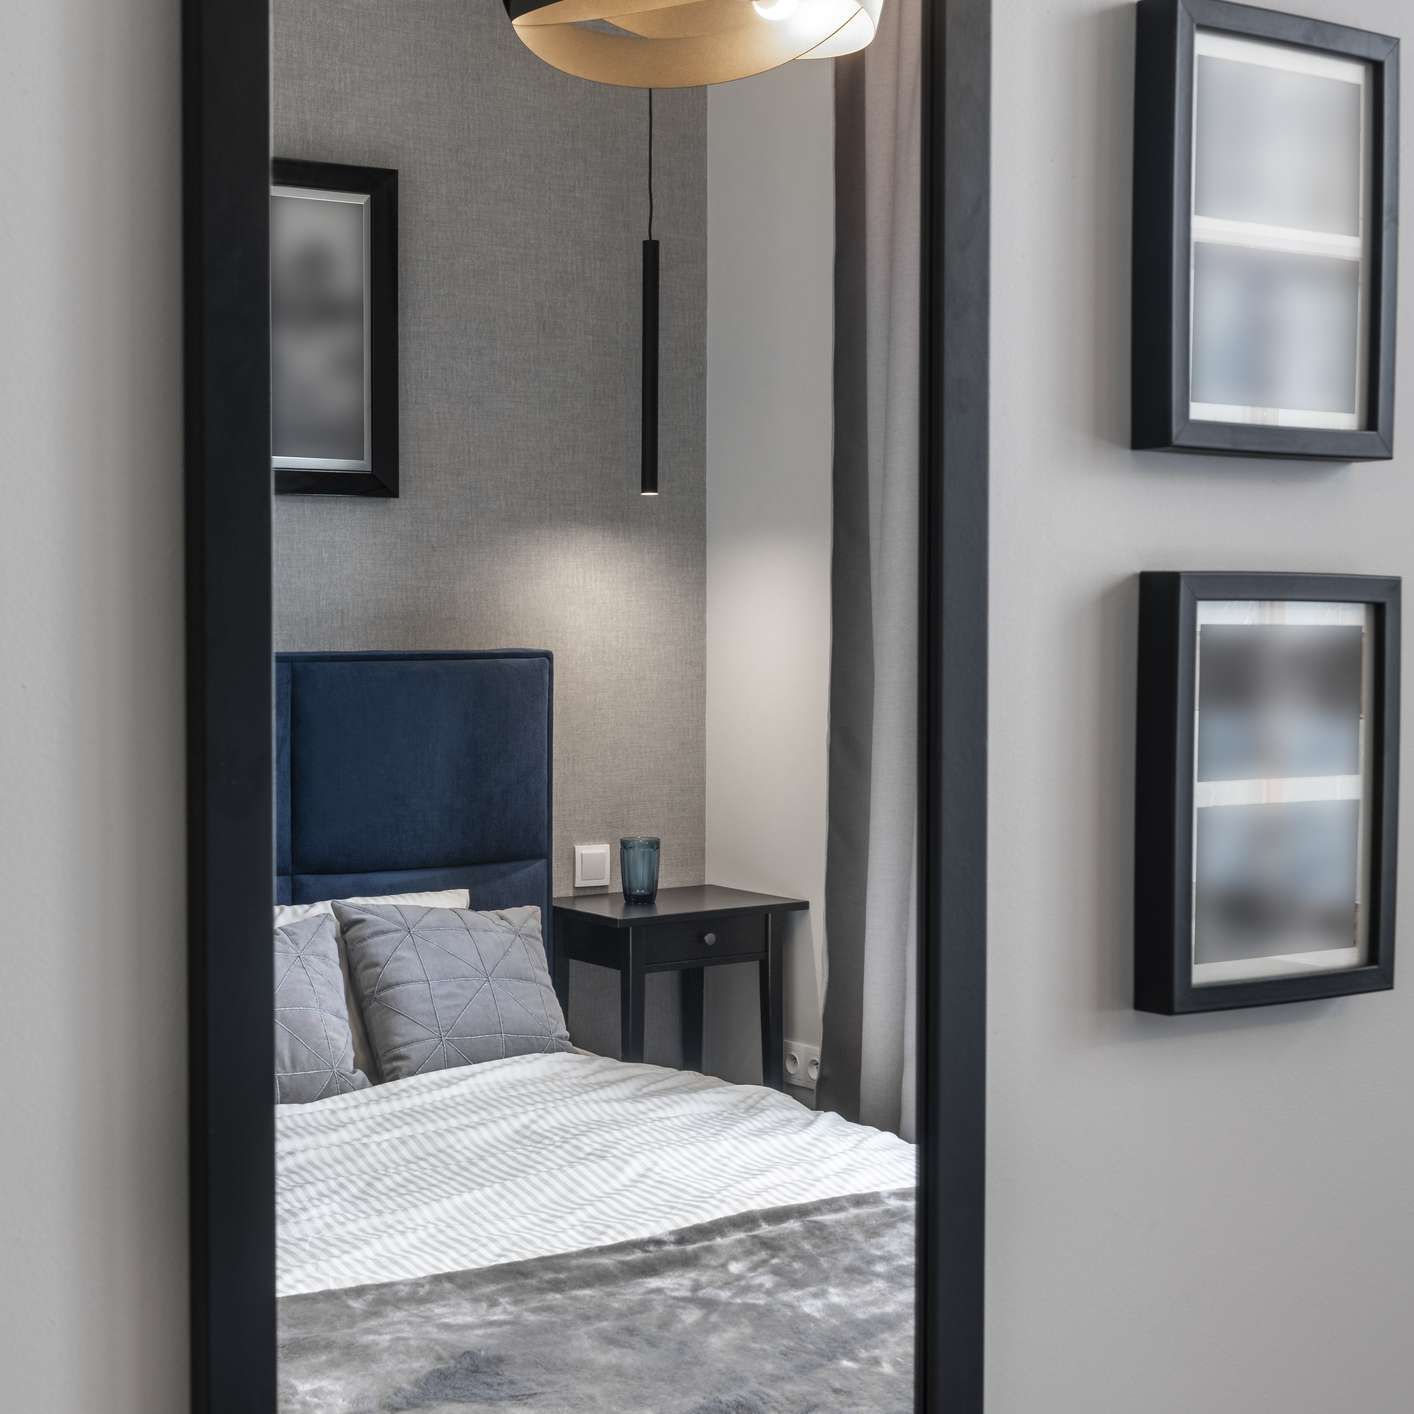 Modern bedroom in gray finishing with blue bed and mirror